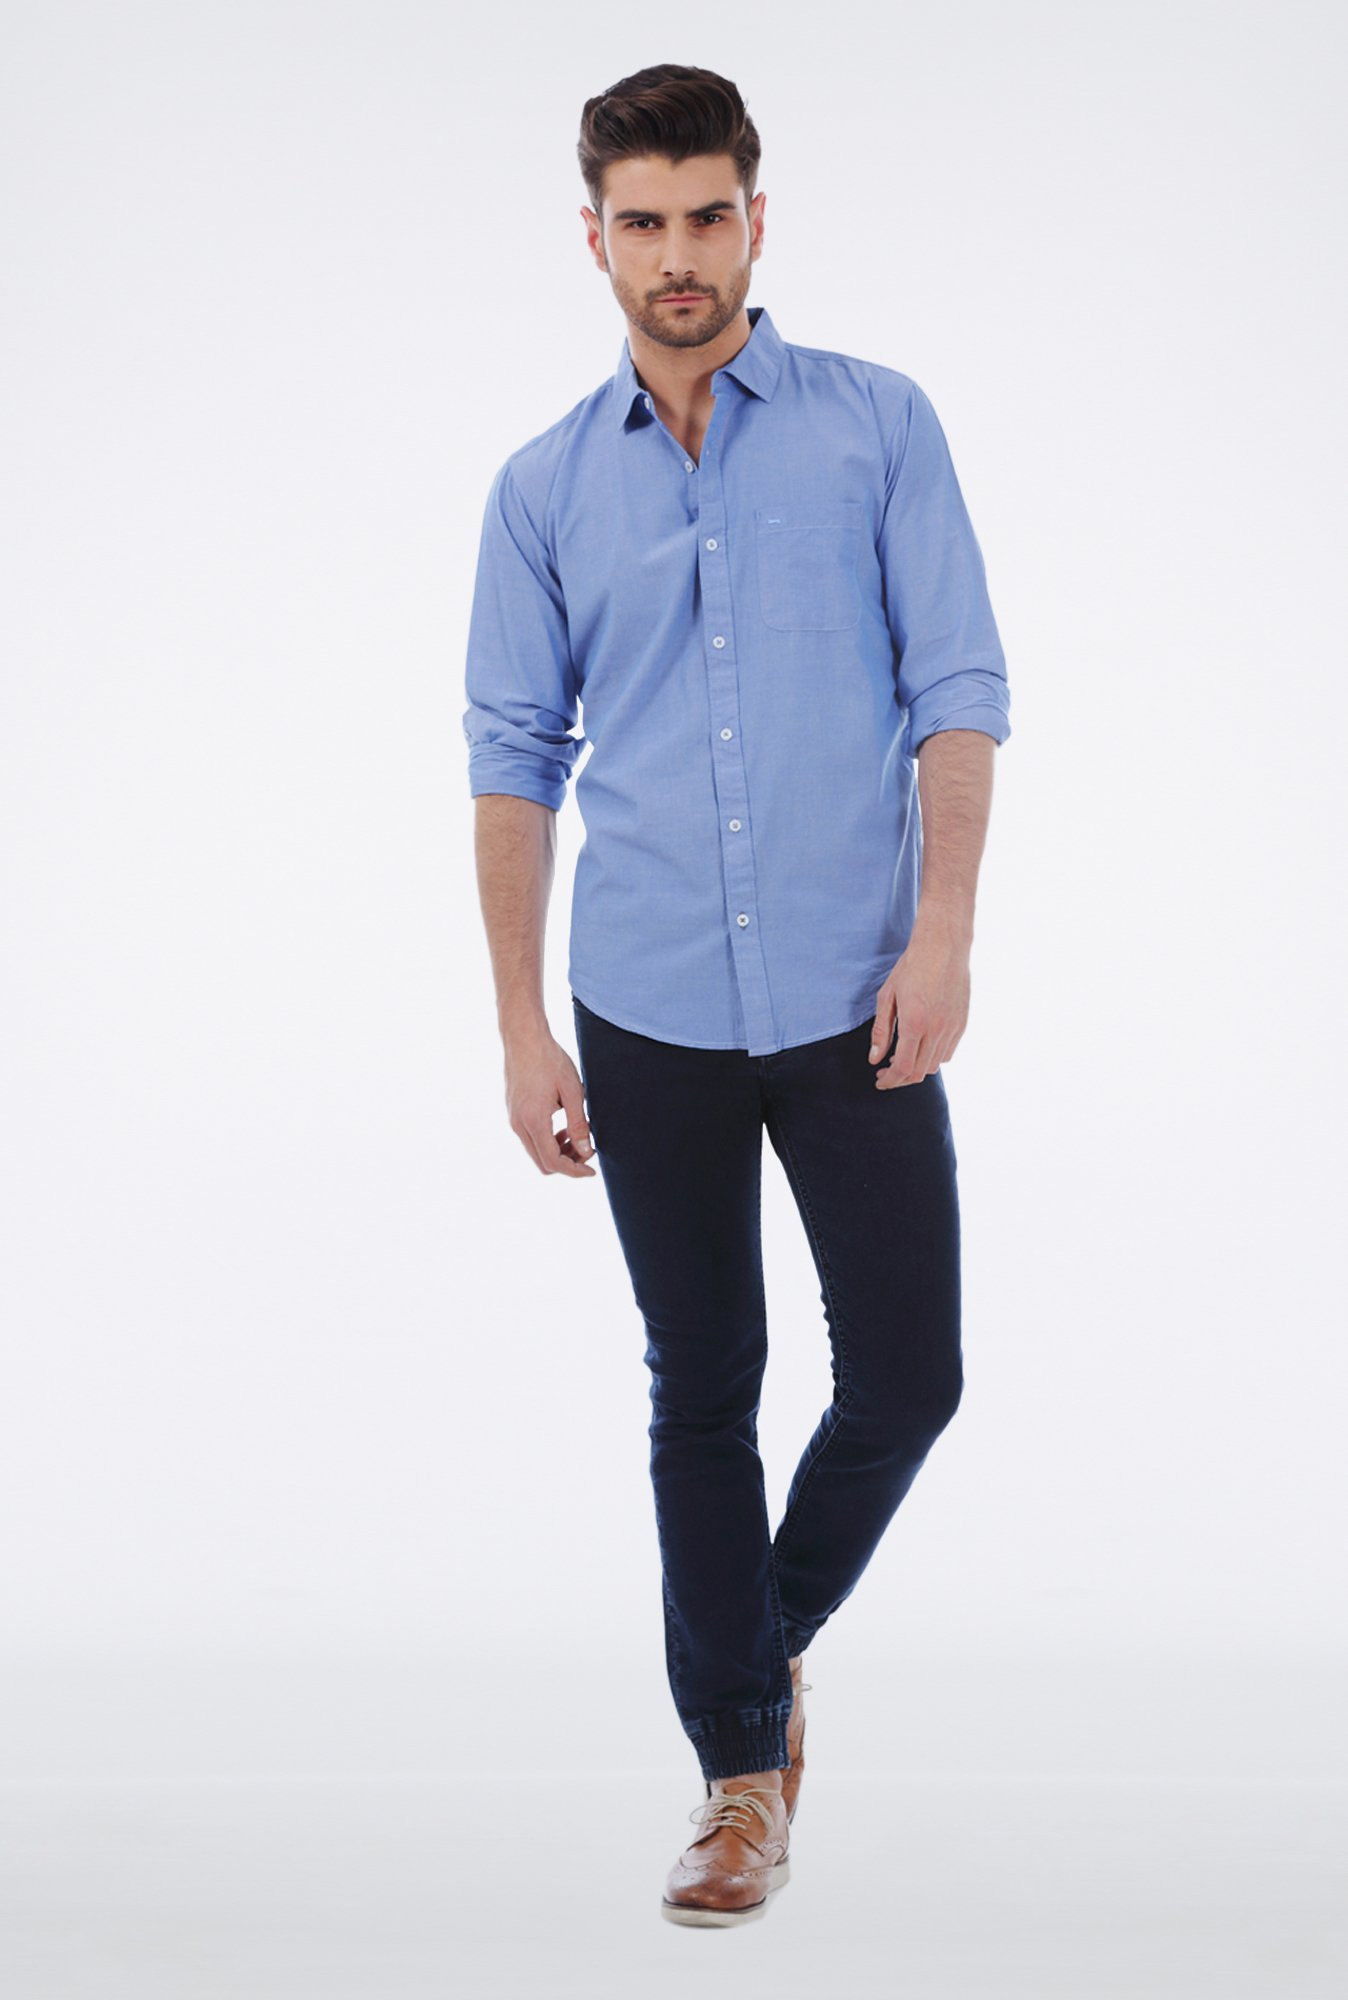 Basics Blue Chambray Cotton Shirt